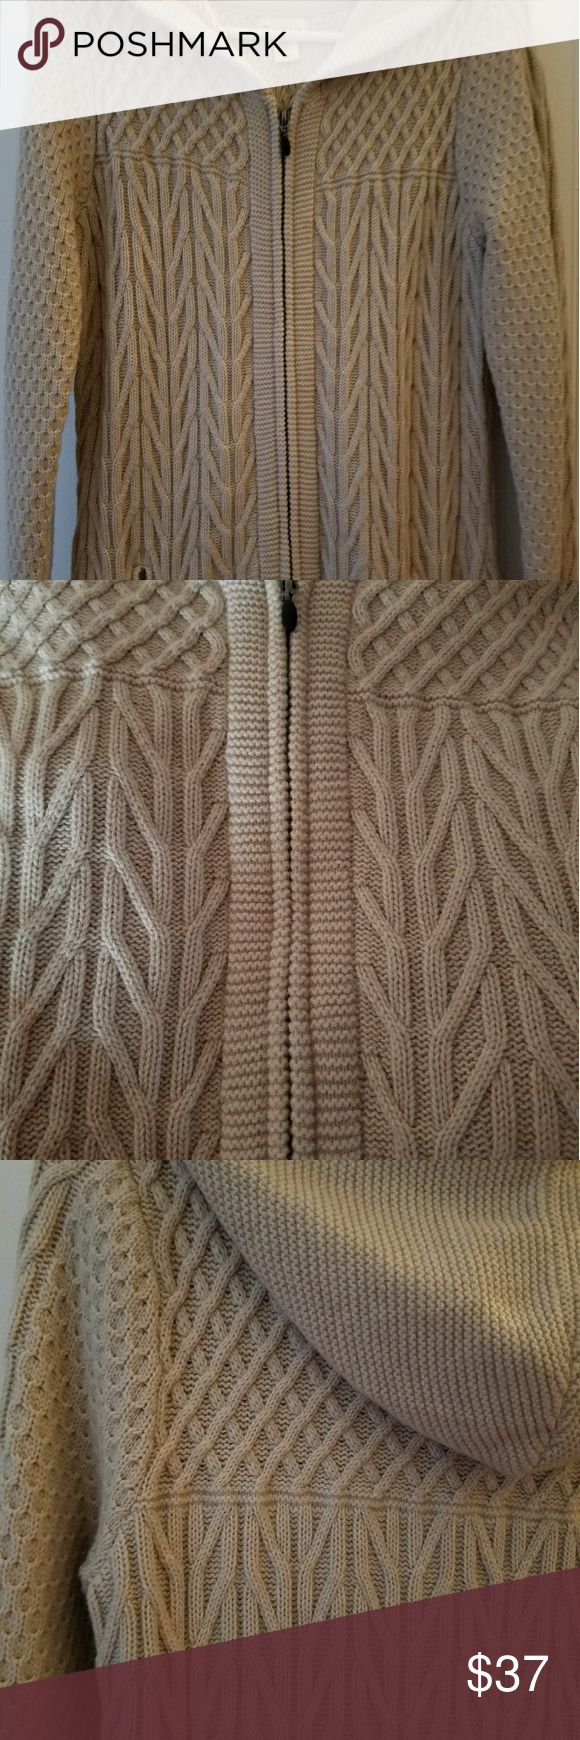 AKINI GORGEOUS ZIP UP SWEATER WITH HOOD Like new, worn once. Wool and Nylon, very heavy warm sweater with 2 zip front side pockets, hood, and front zip. Great with a pair of leggings and boots. Nice neutral color. womens medium AKINI Sweaters Cardigans